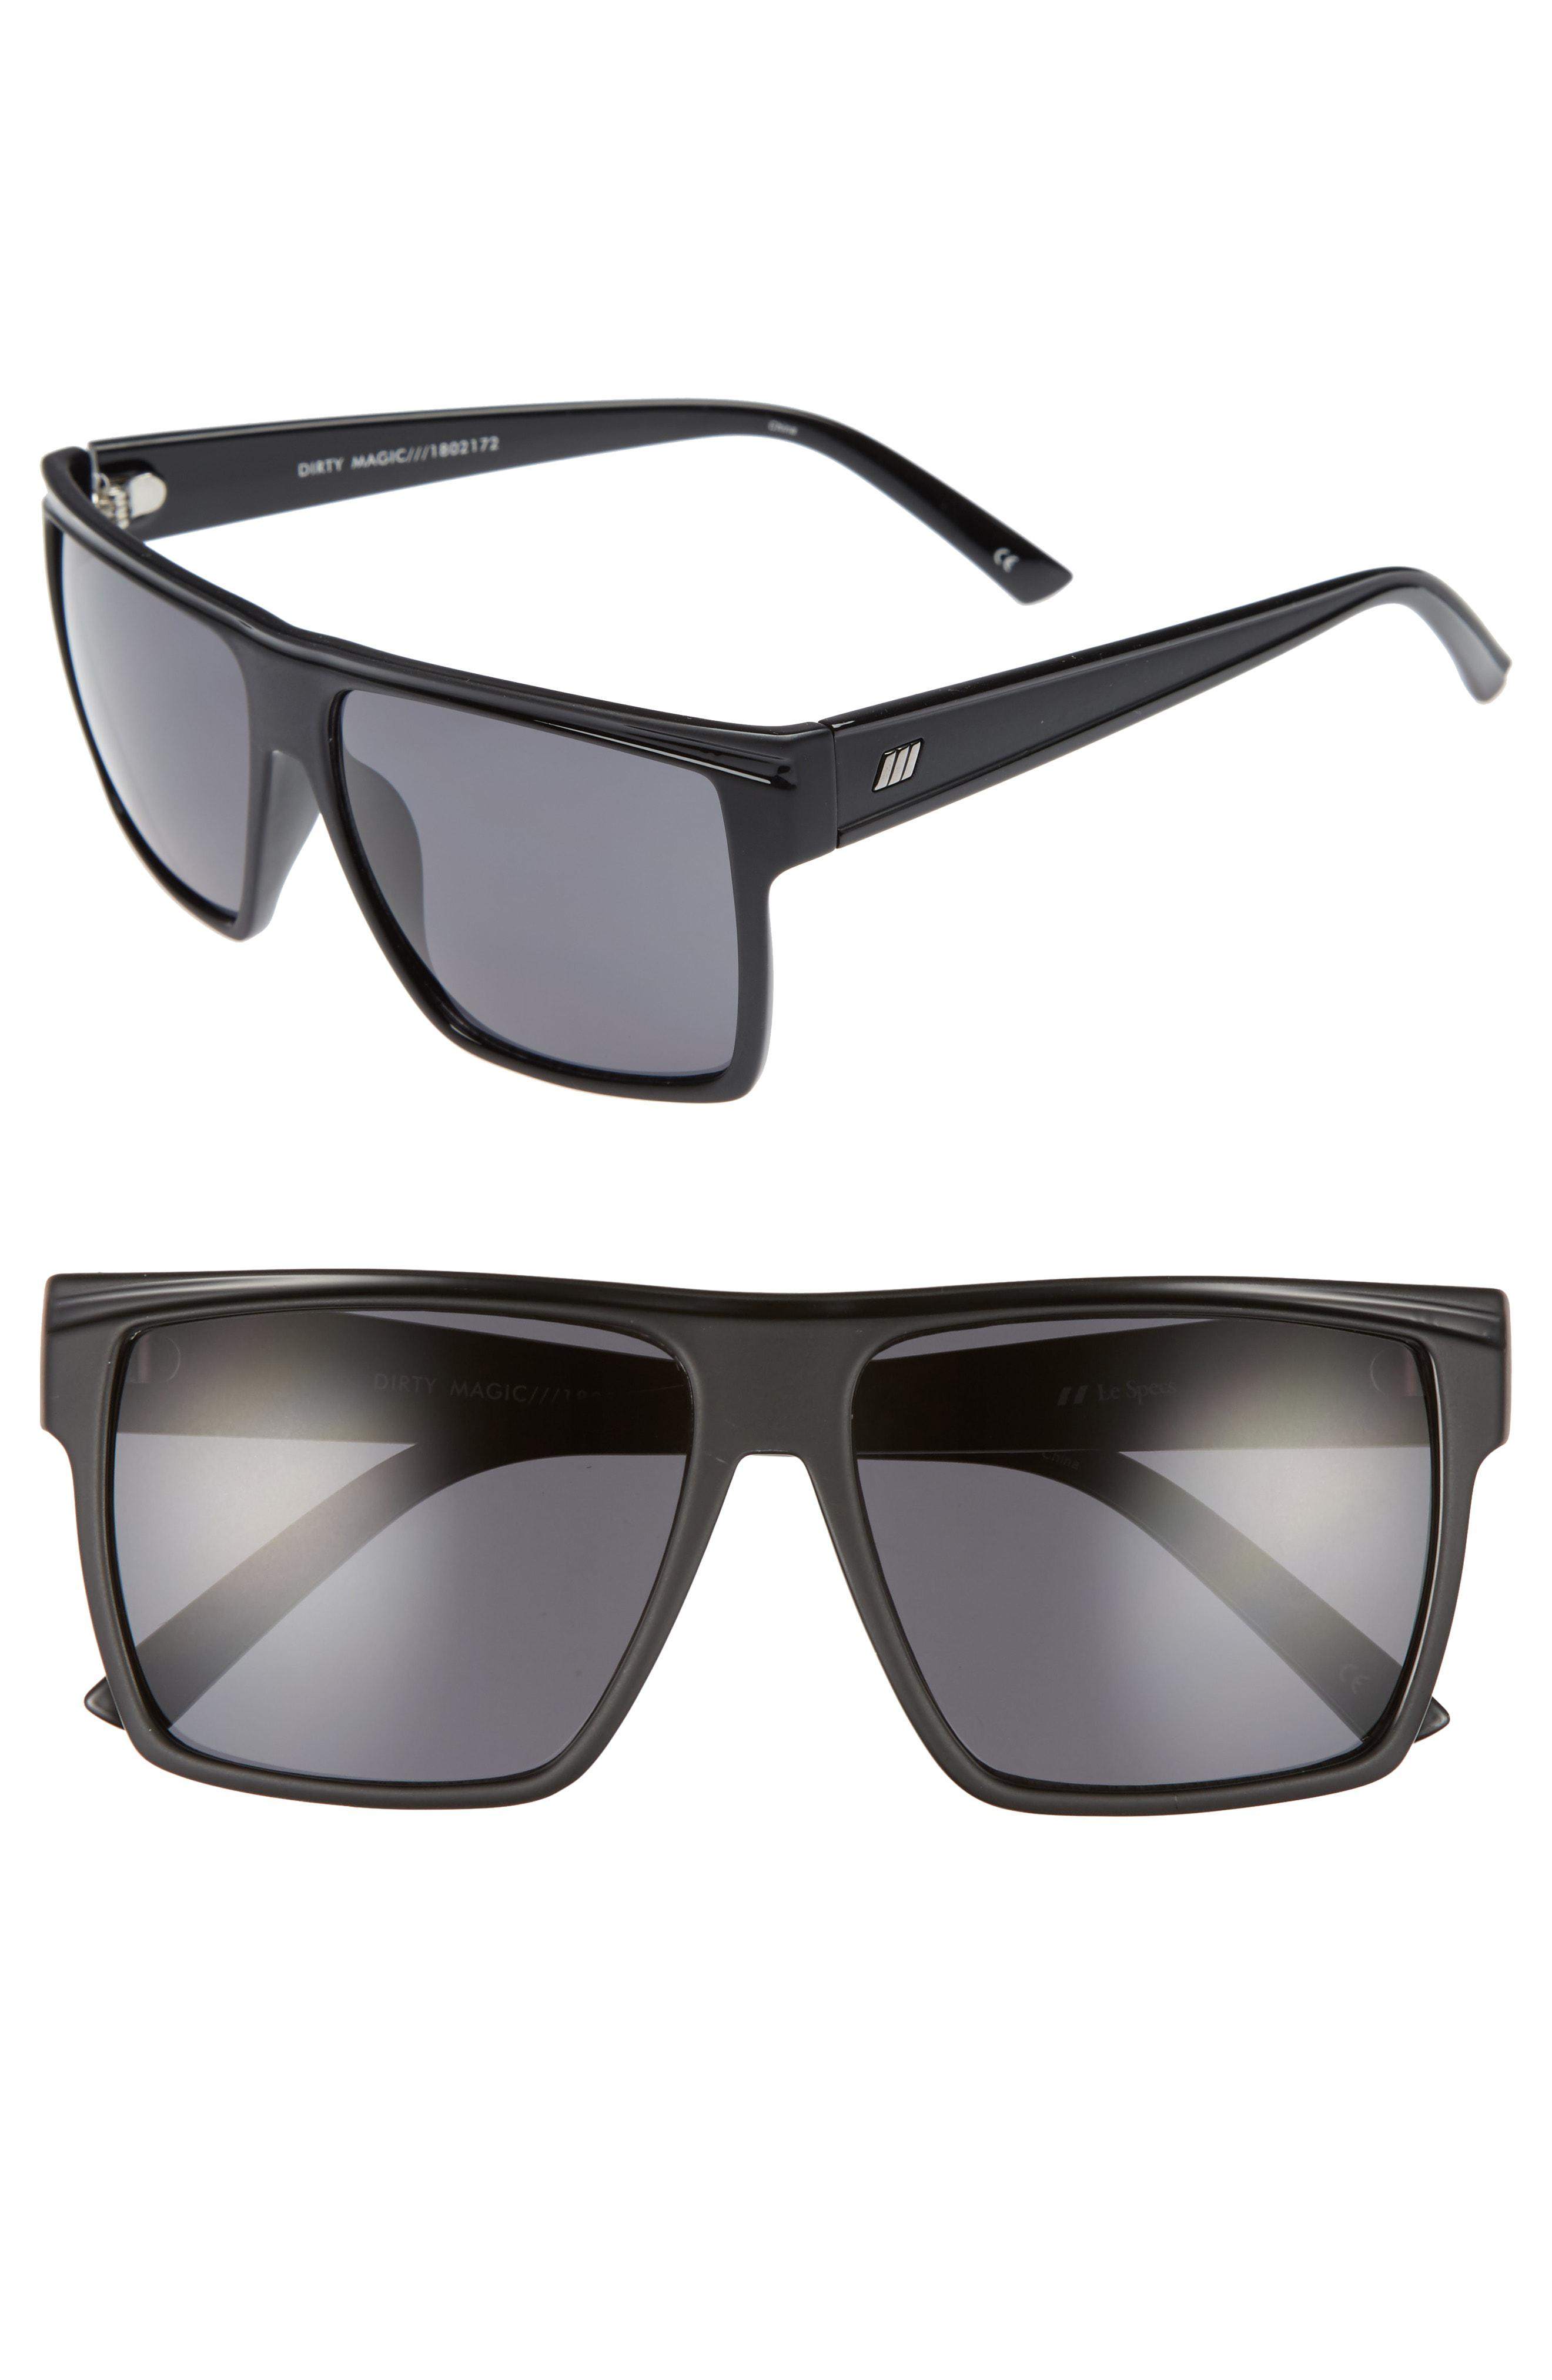 5d5ca11face Lyst - Le Specs Dirty Magic 56mm Rectangle Sunglasses in Black